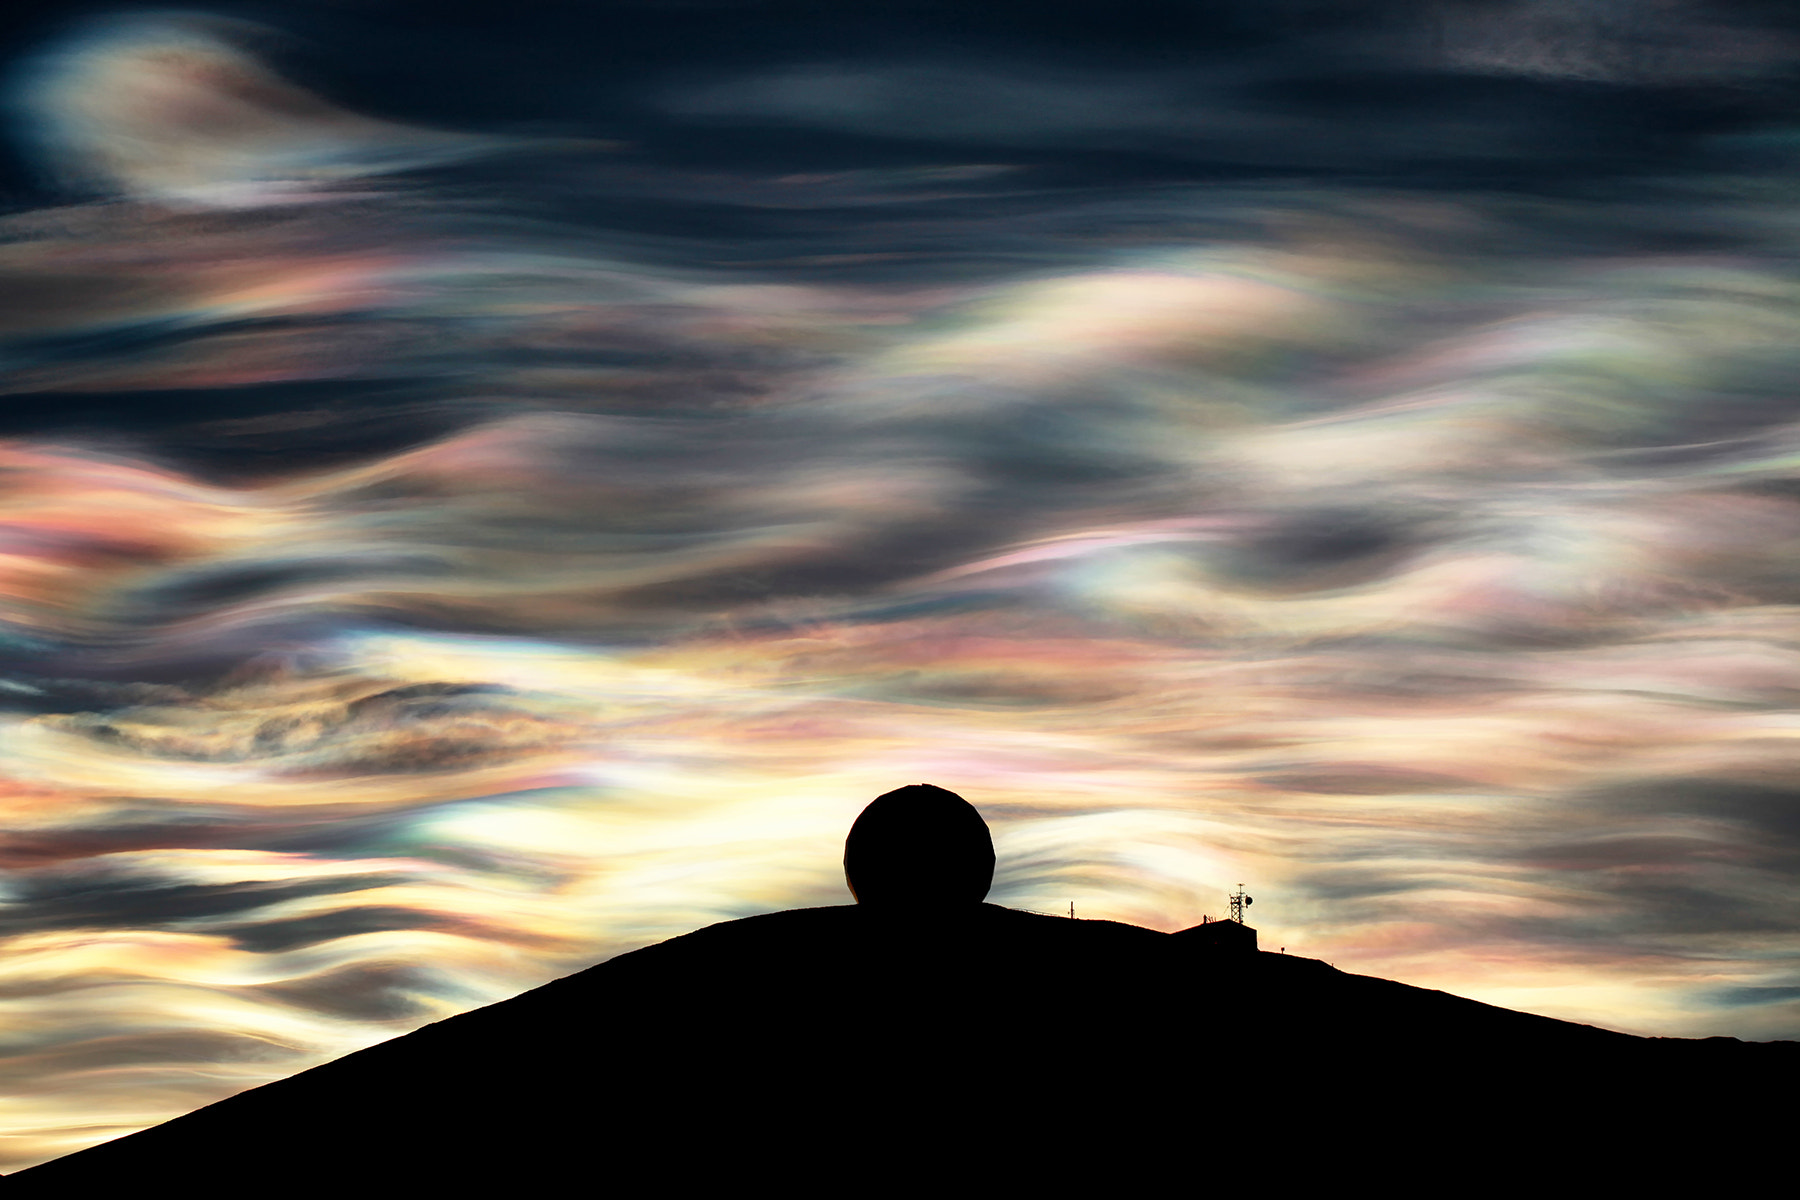 Photograph Antarctic Nacreous 2 by Deven Stross on 500px